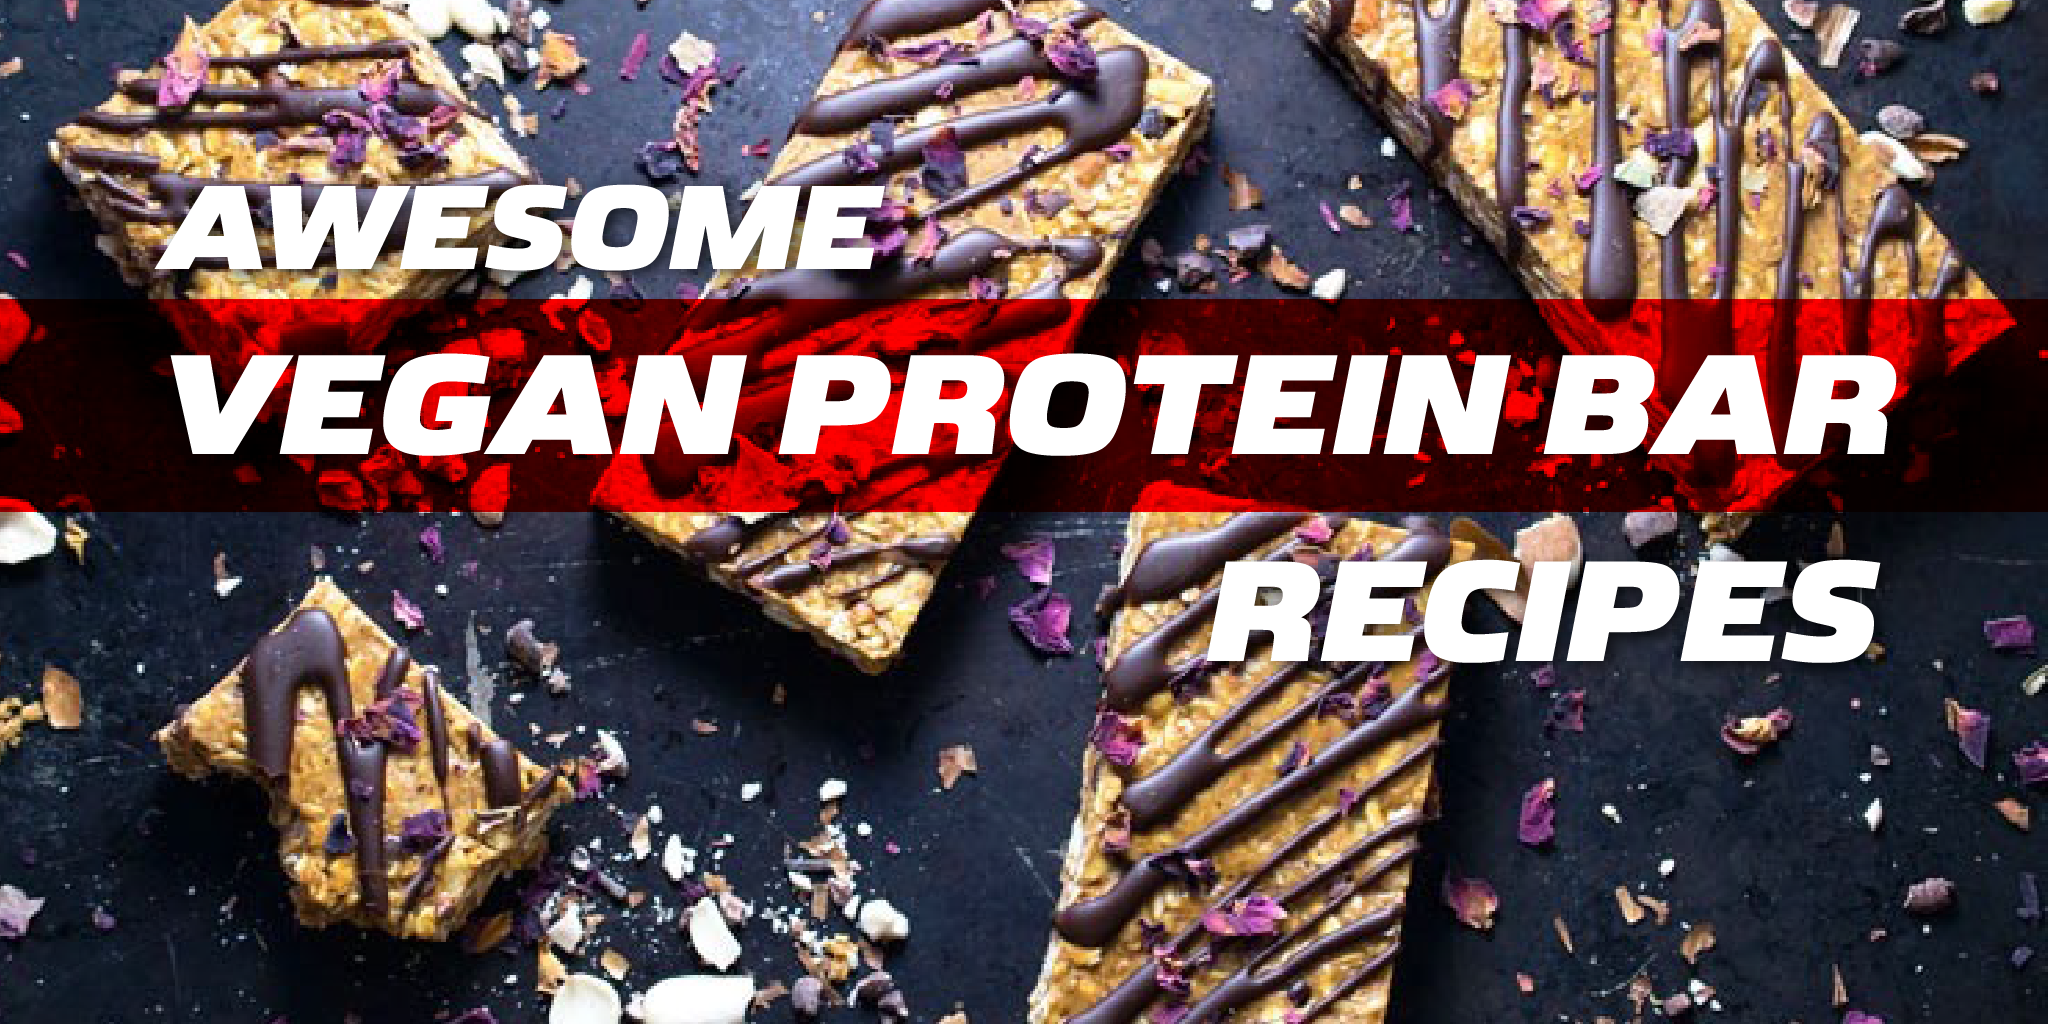 Awesome Vegan Protein Powder Bar Recipes